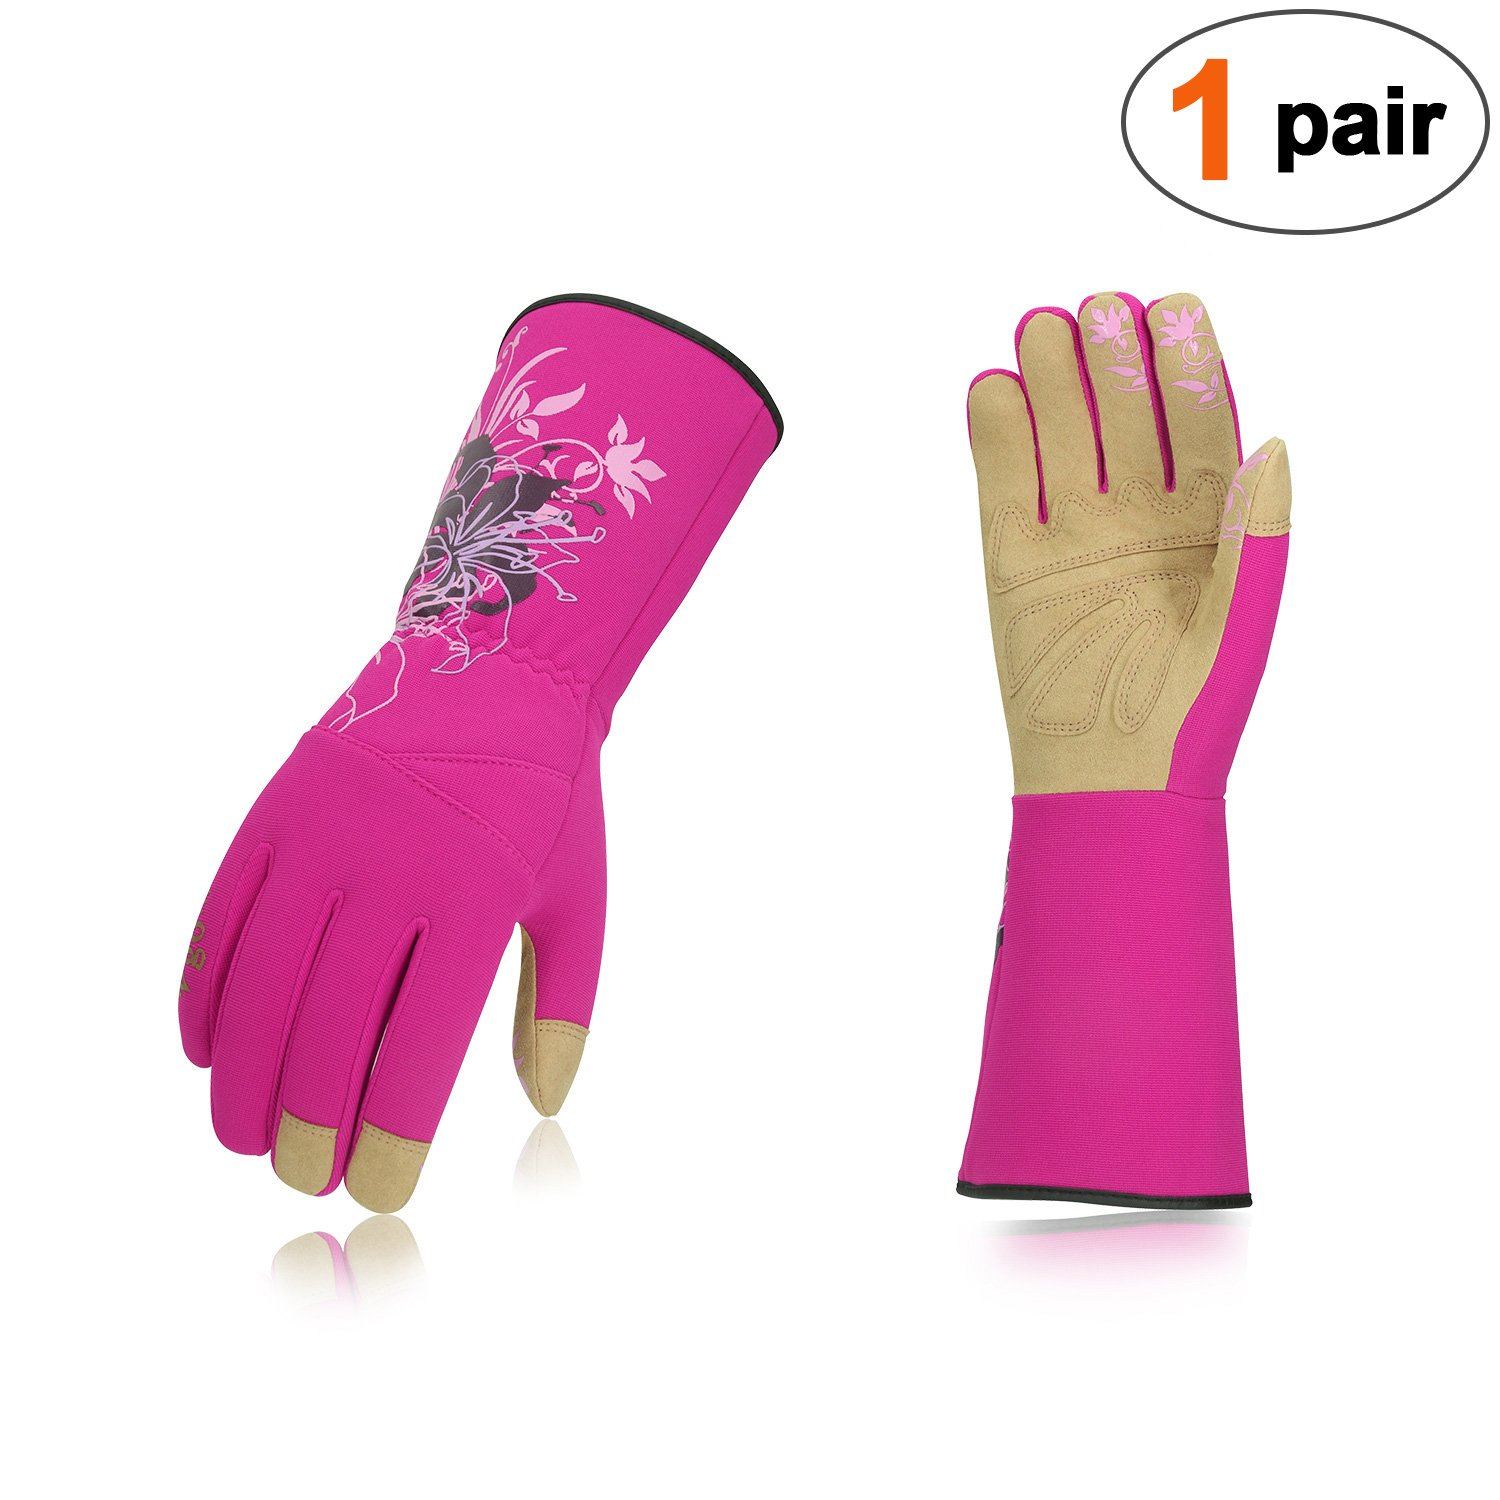 Vgo Ladies' Synthetic Leather Long Cuff Rose Garden Gloves(1Pair,Size L,Purple Red,SL7445)